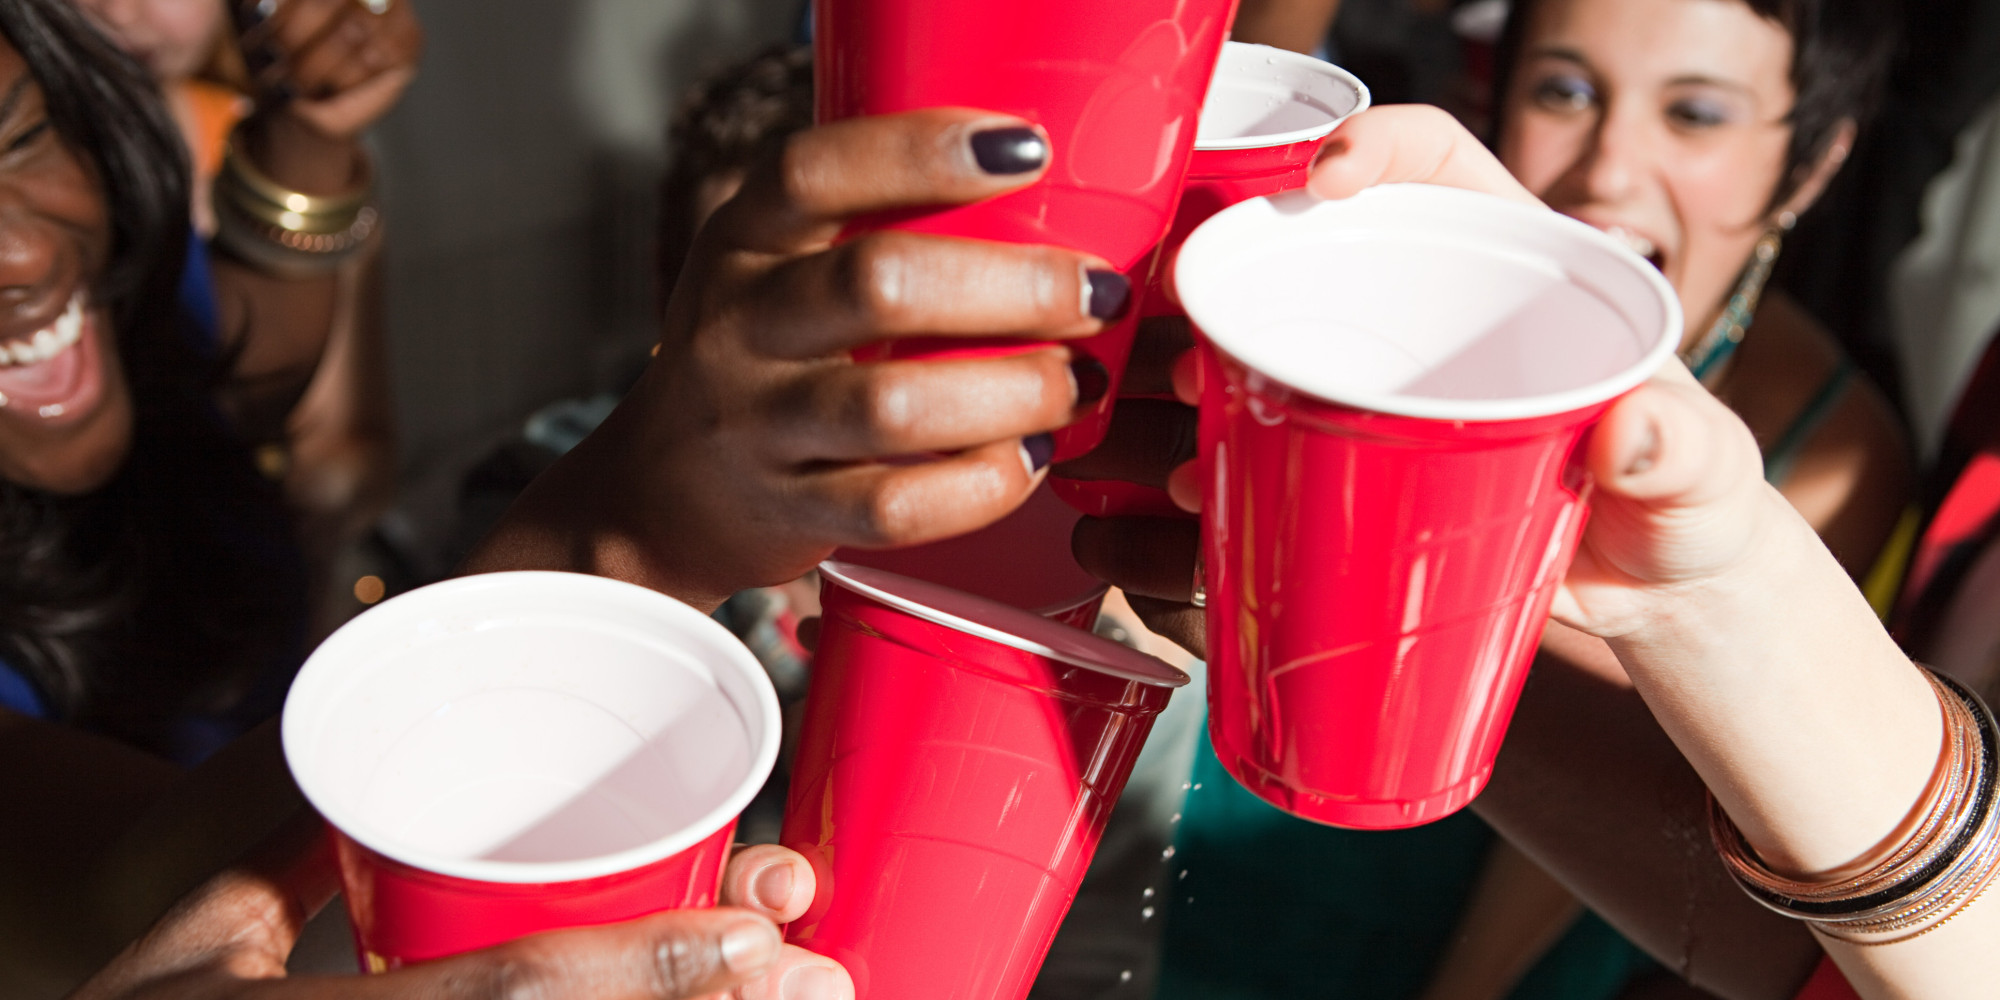 Harm Reduction: Reducing Alcohol Consumption in the Dorms